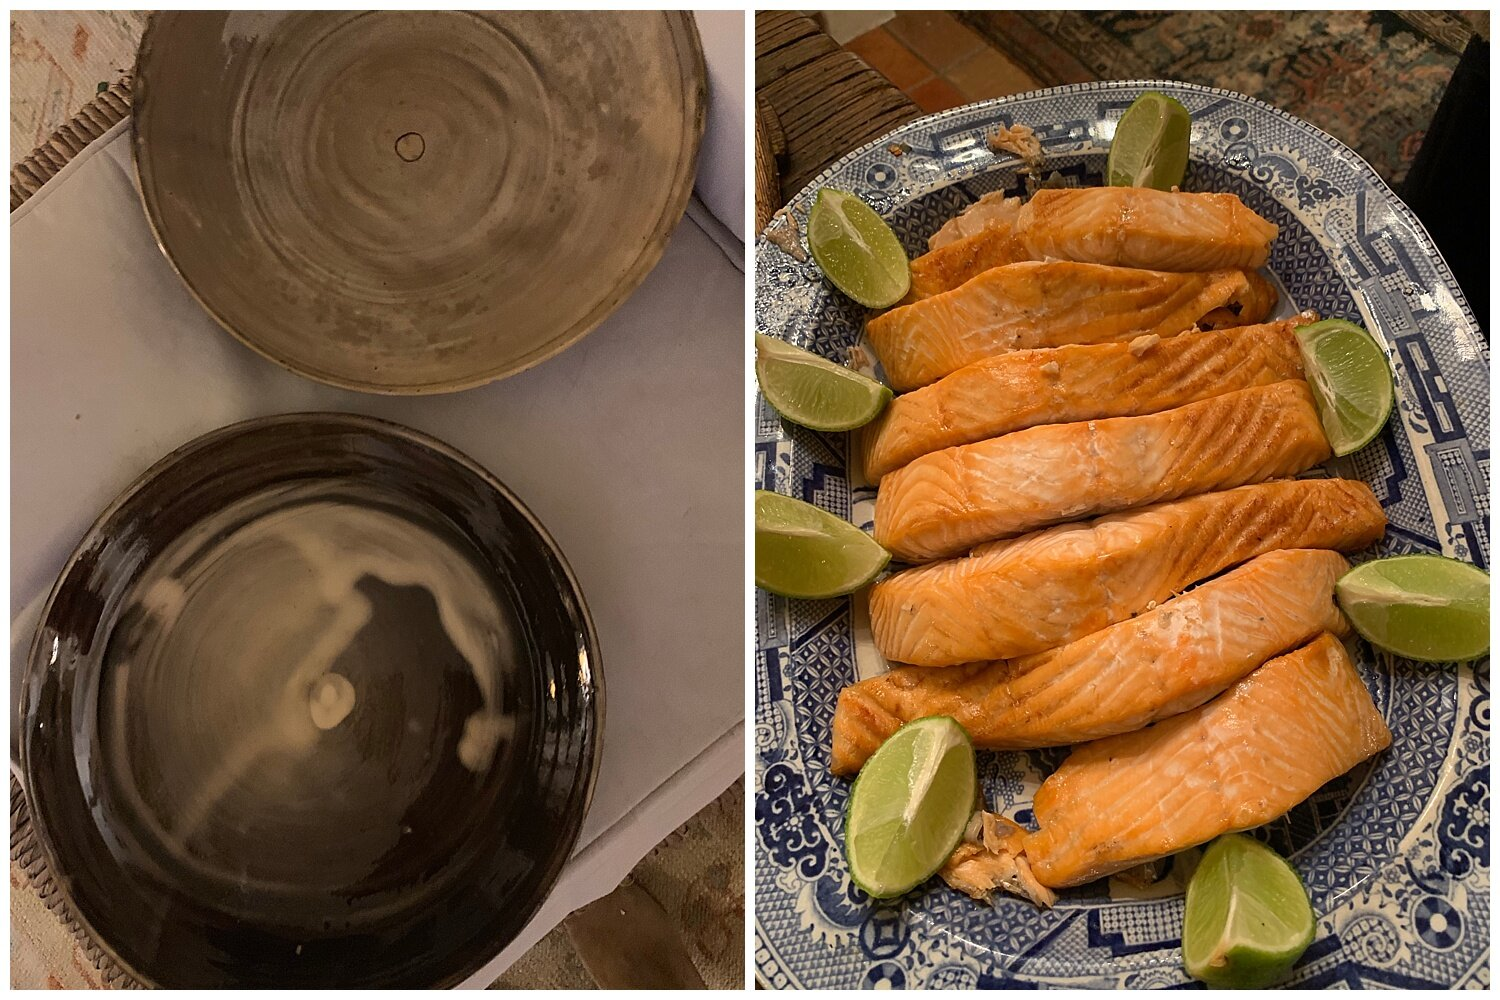 Our first dinner in France - roasted salmon served on handmade plates